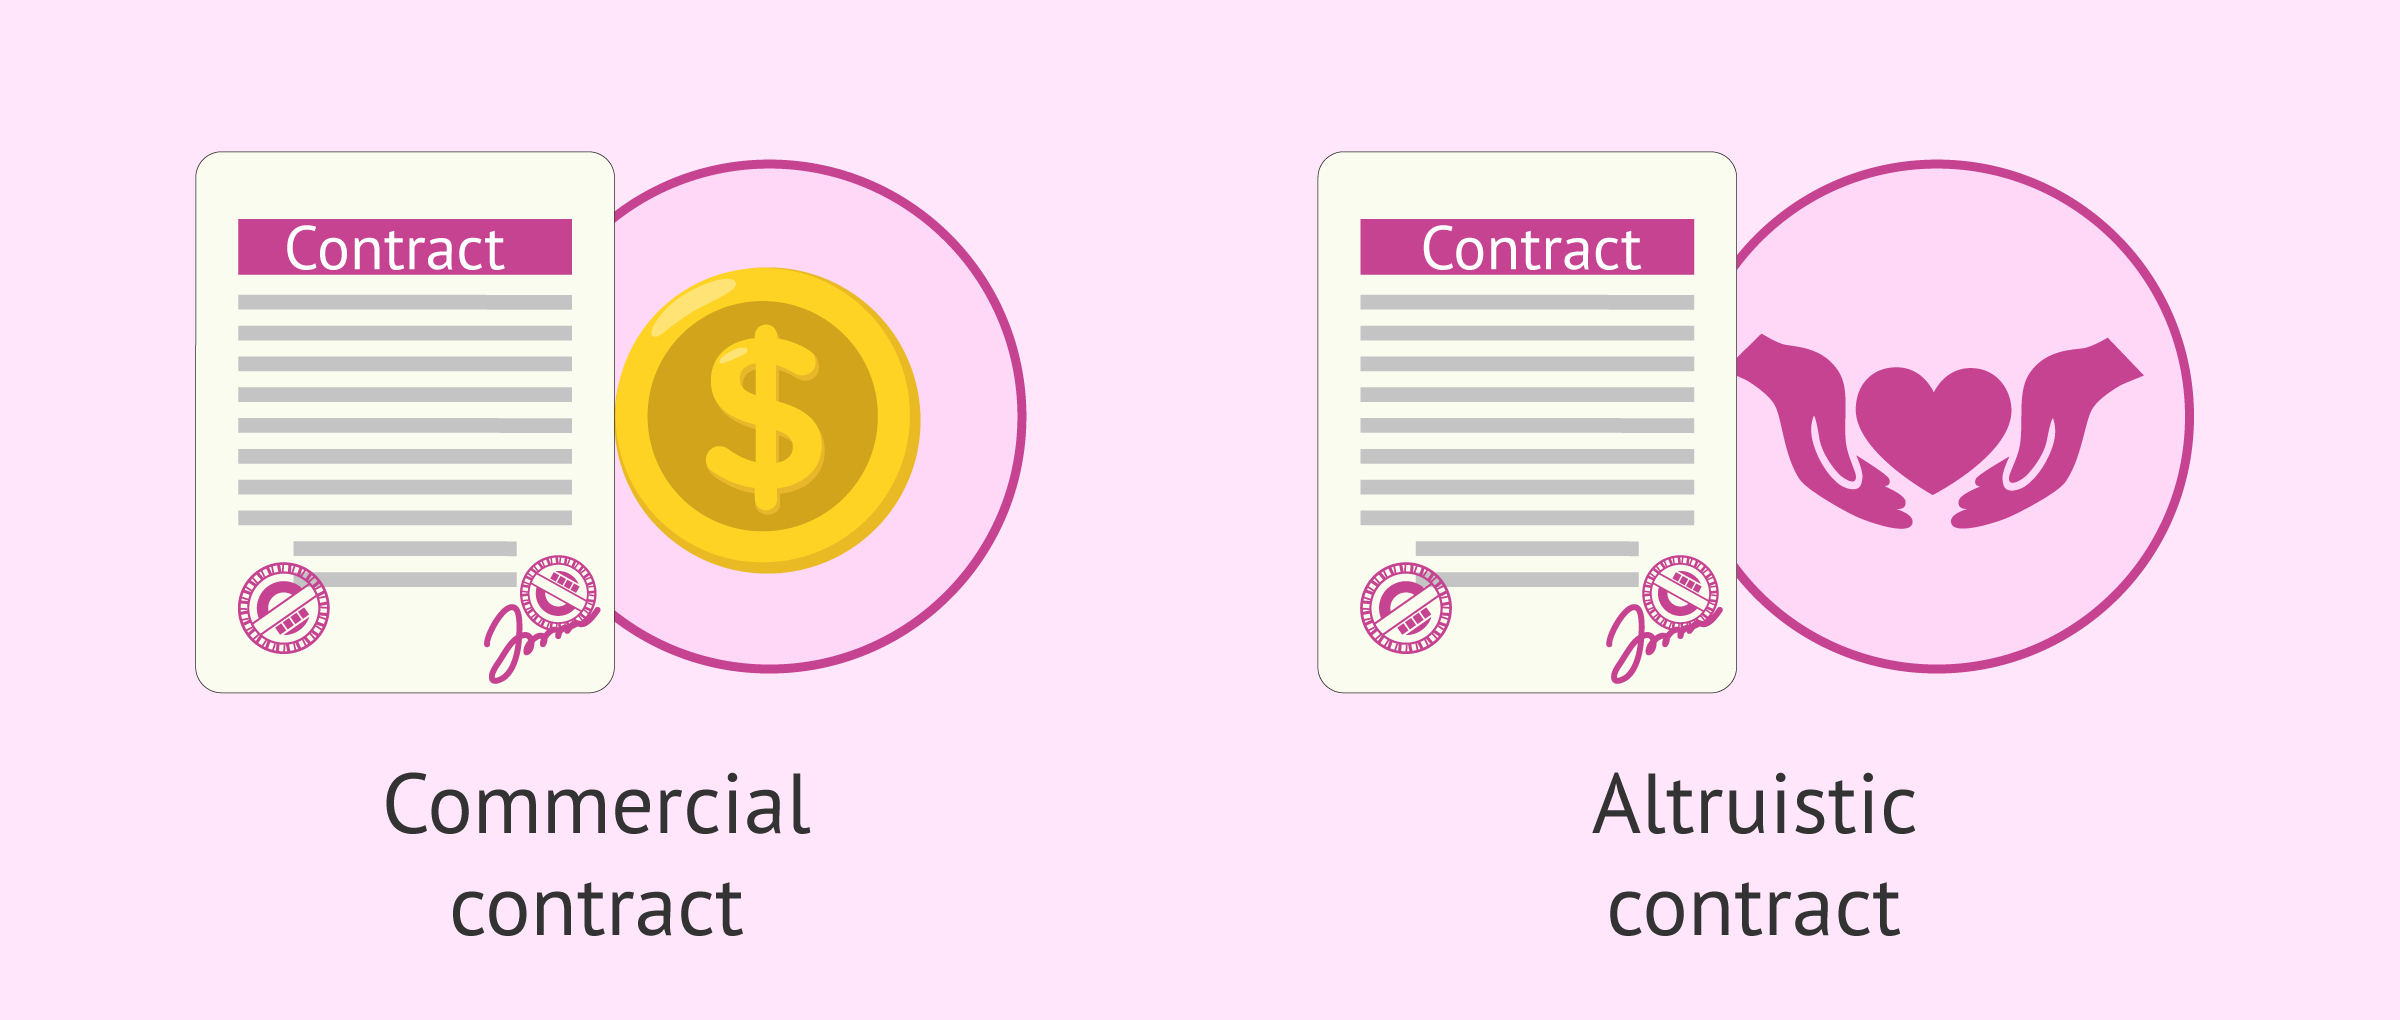 Types of contracts for surrogacy